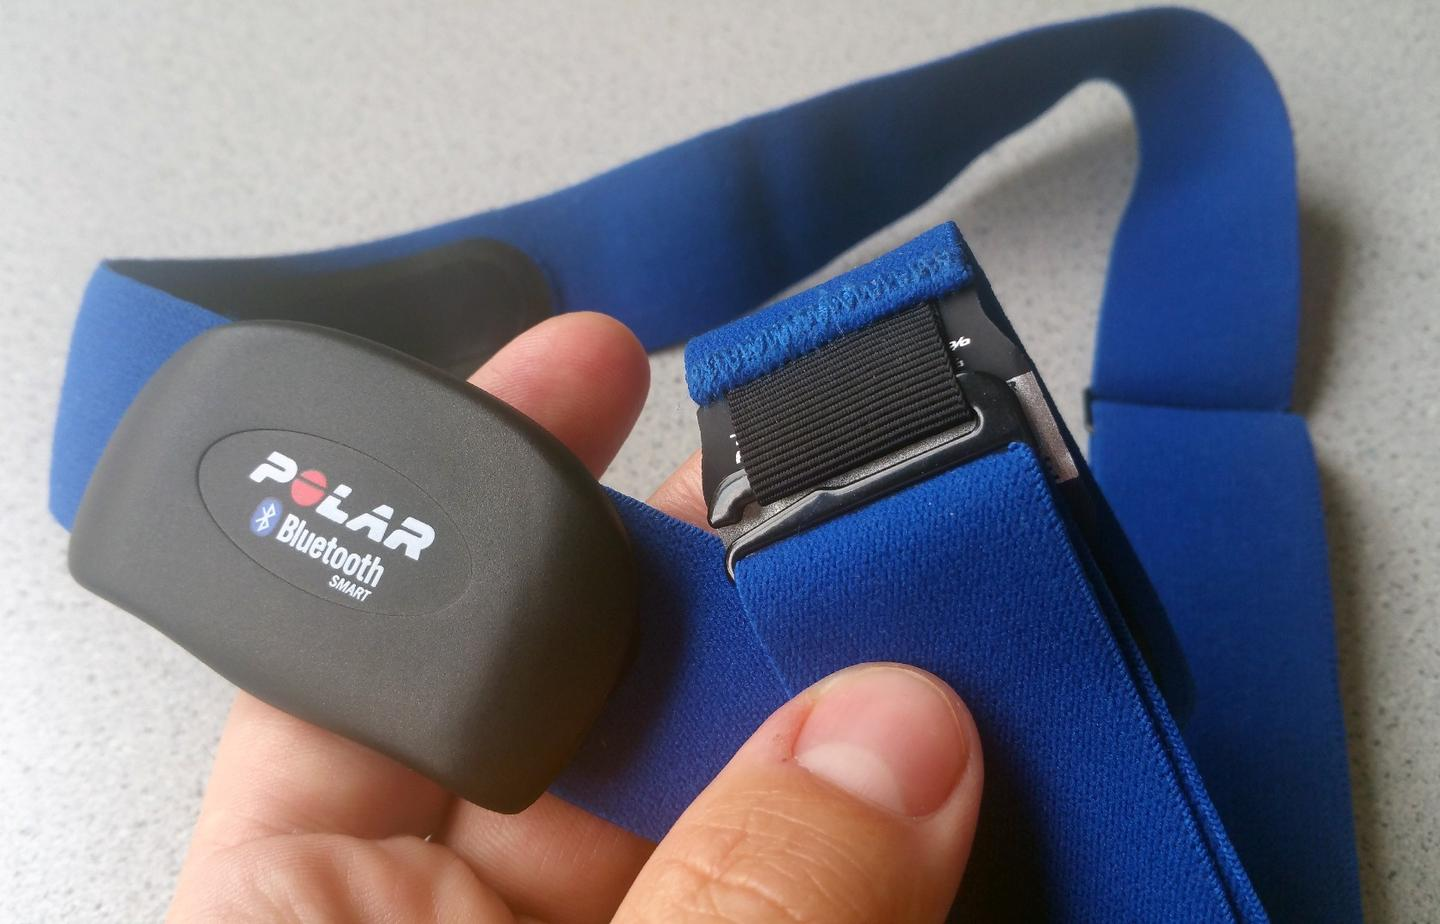 The Polar H7 heart rate sensor is lightweight and comes with an adjustable neoprene strap